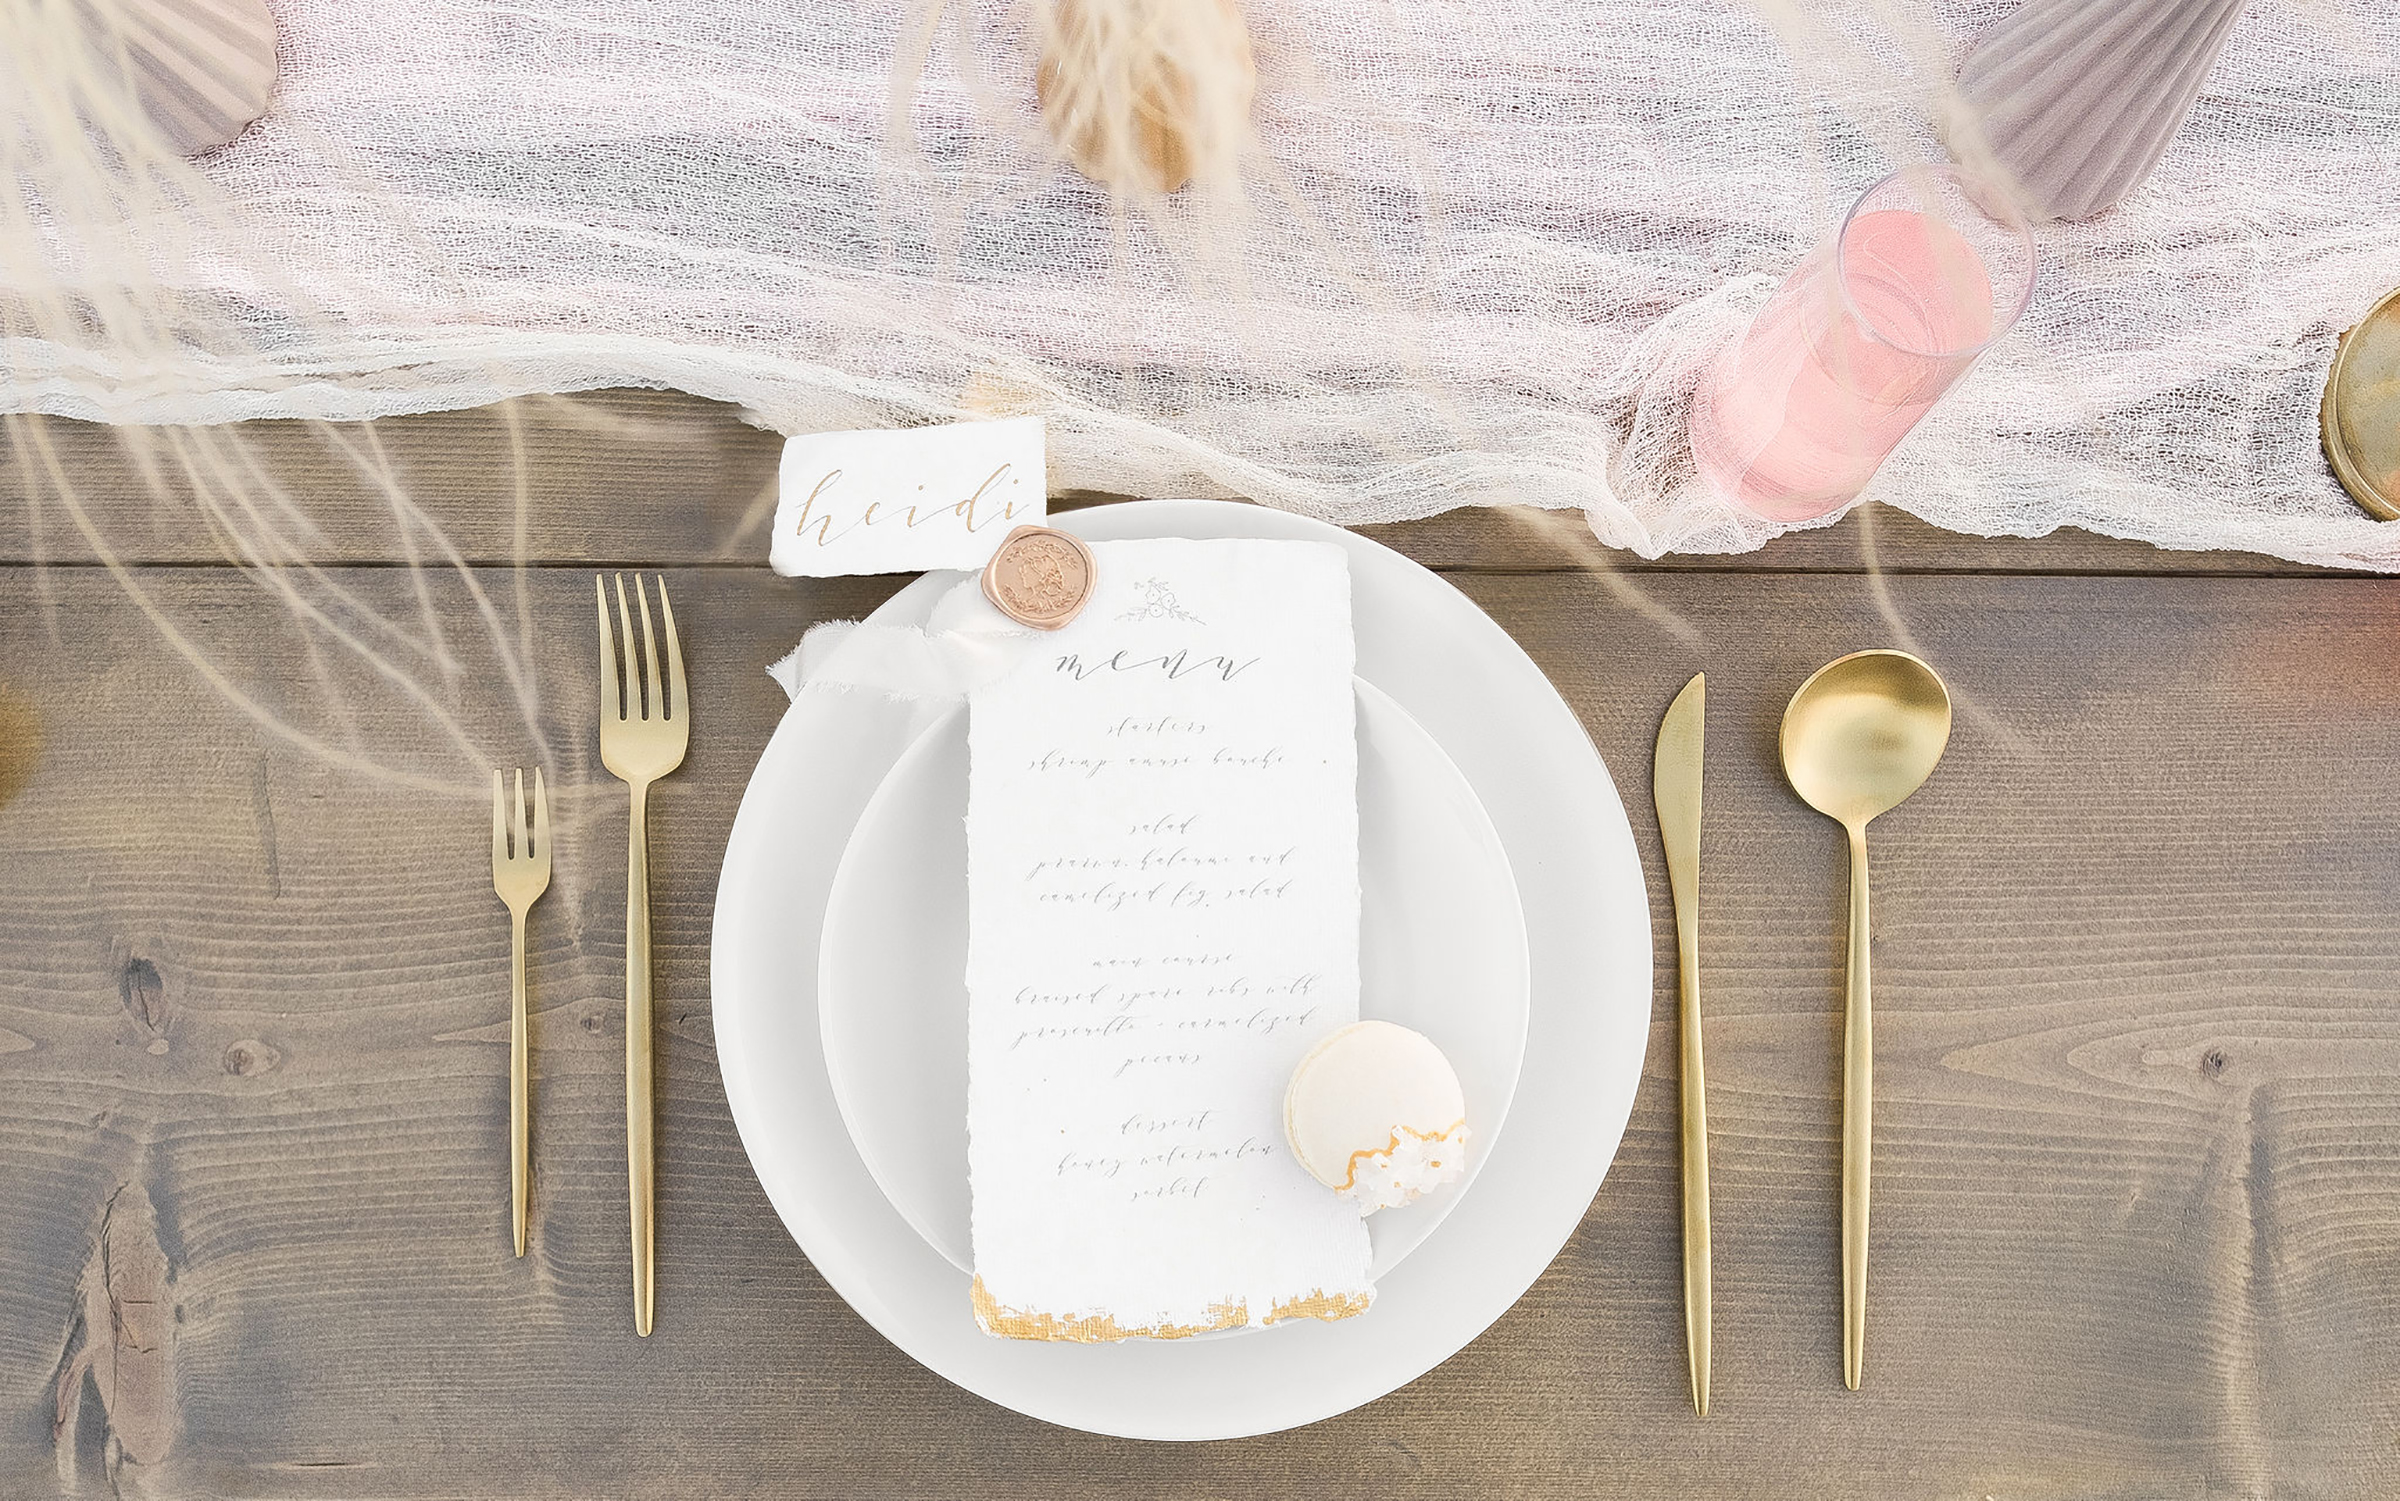 Table by  Bloomingbelles , macaron baked by Emy Ray Bakes, foliage by  Mylo Fleur , wax seal and ribbon by  Artisaire , paper by  Indian Cotton Paper Co. , Photography and stationery design by  Claire Falco Creative